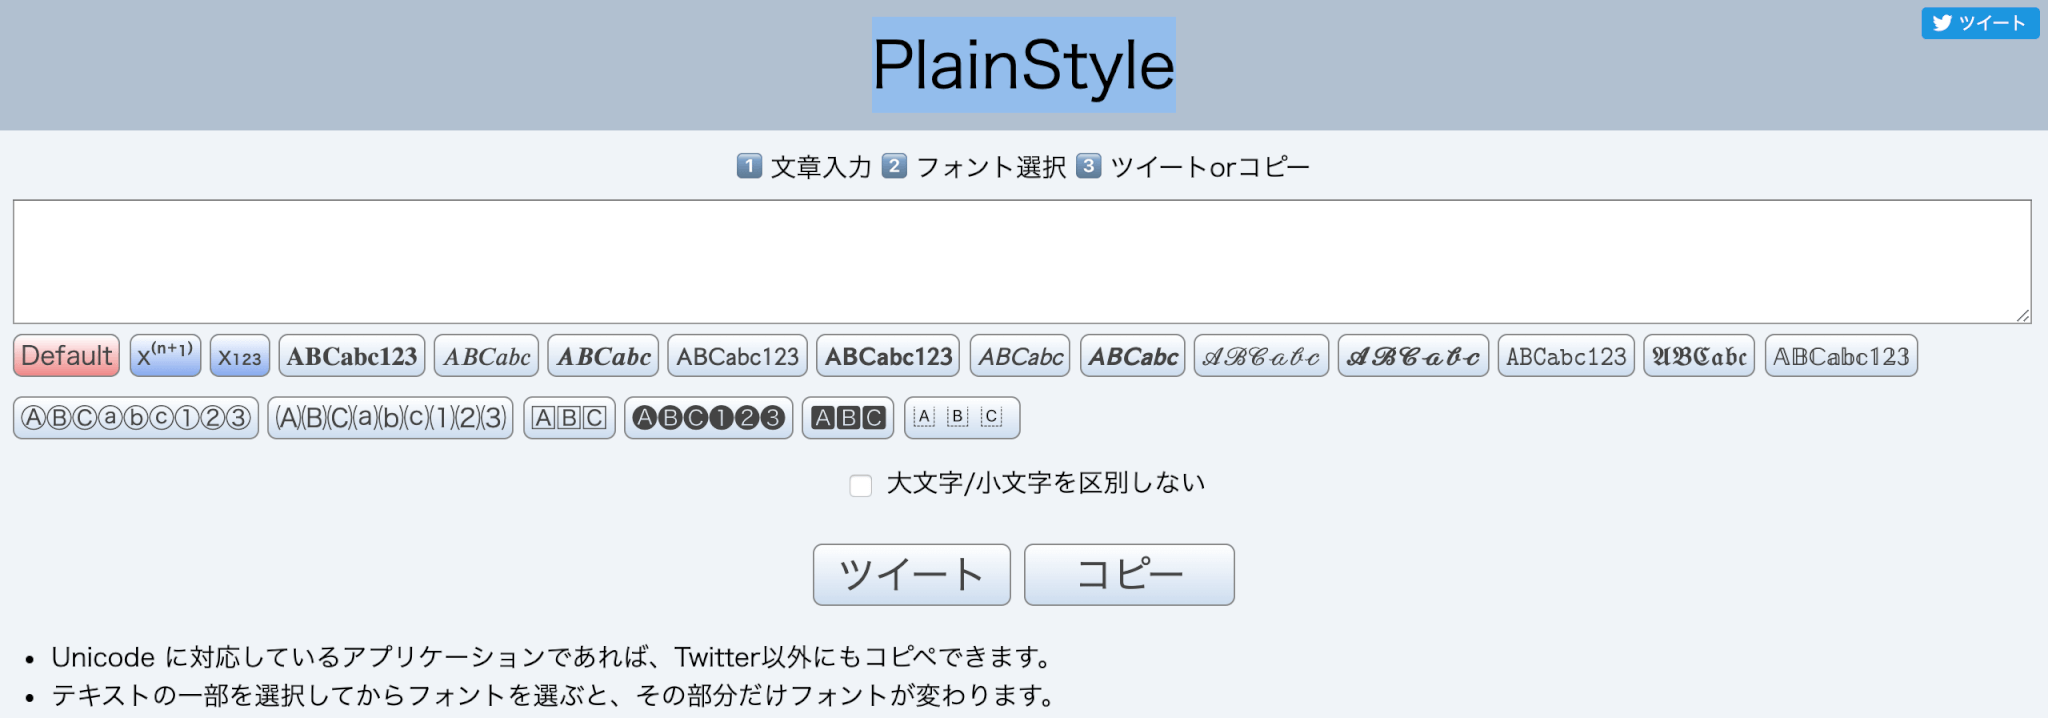 PlainStyle公式ホームページ